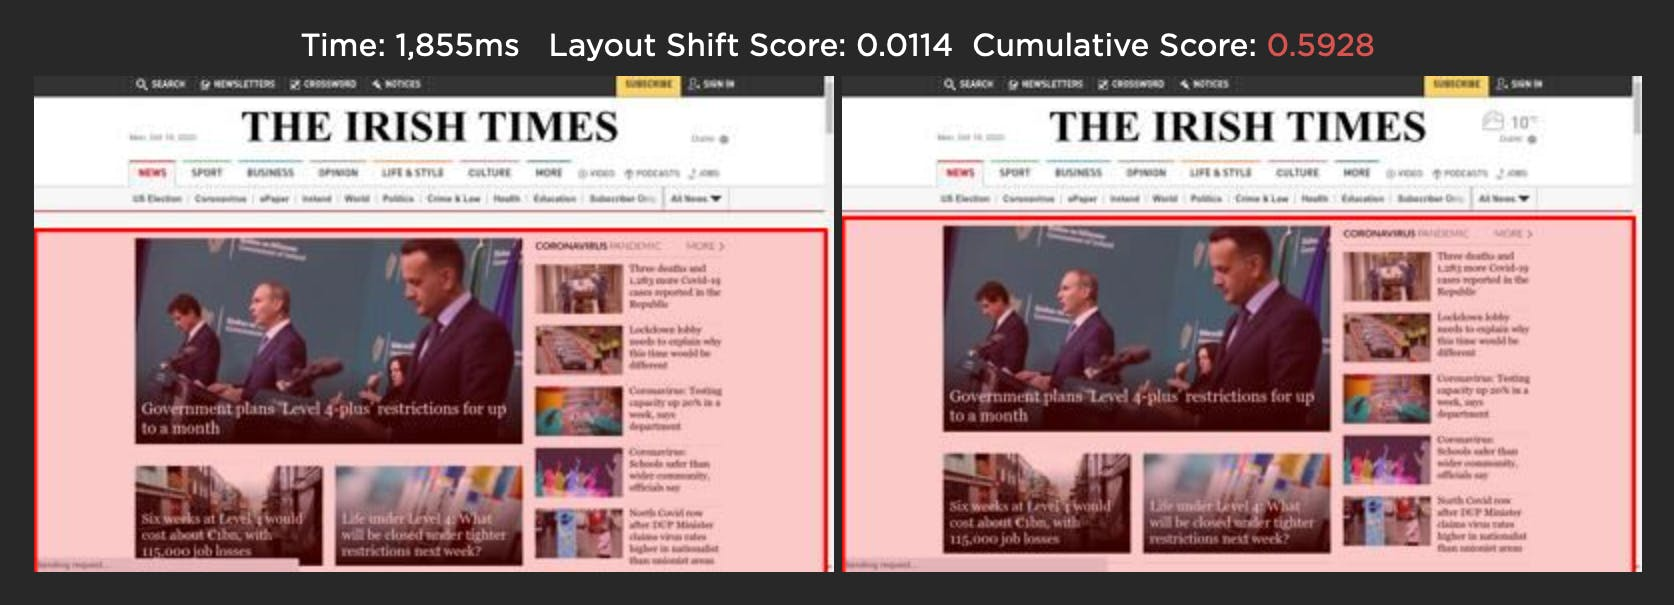 CLS small layout shift